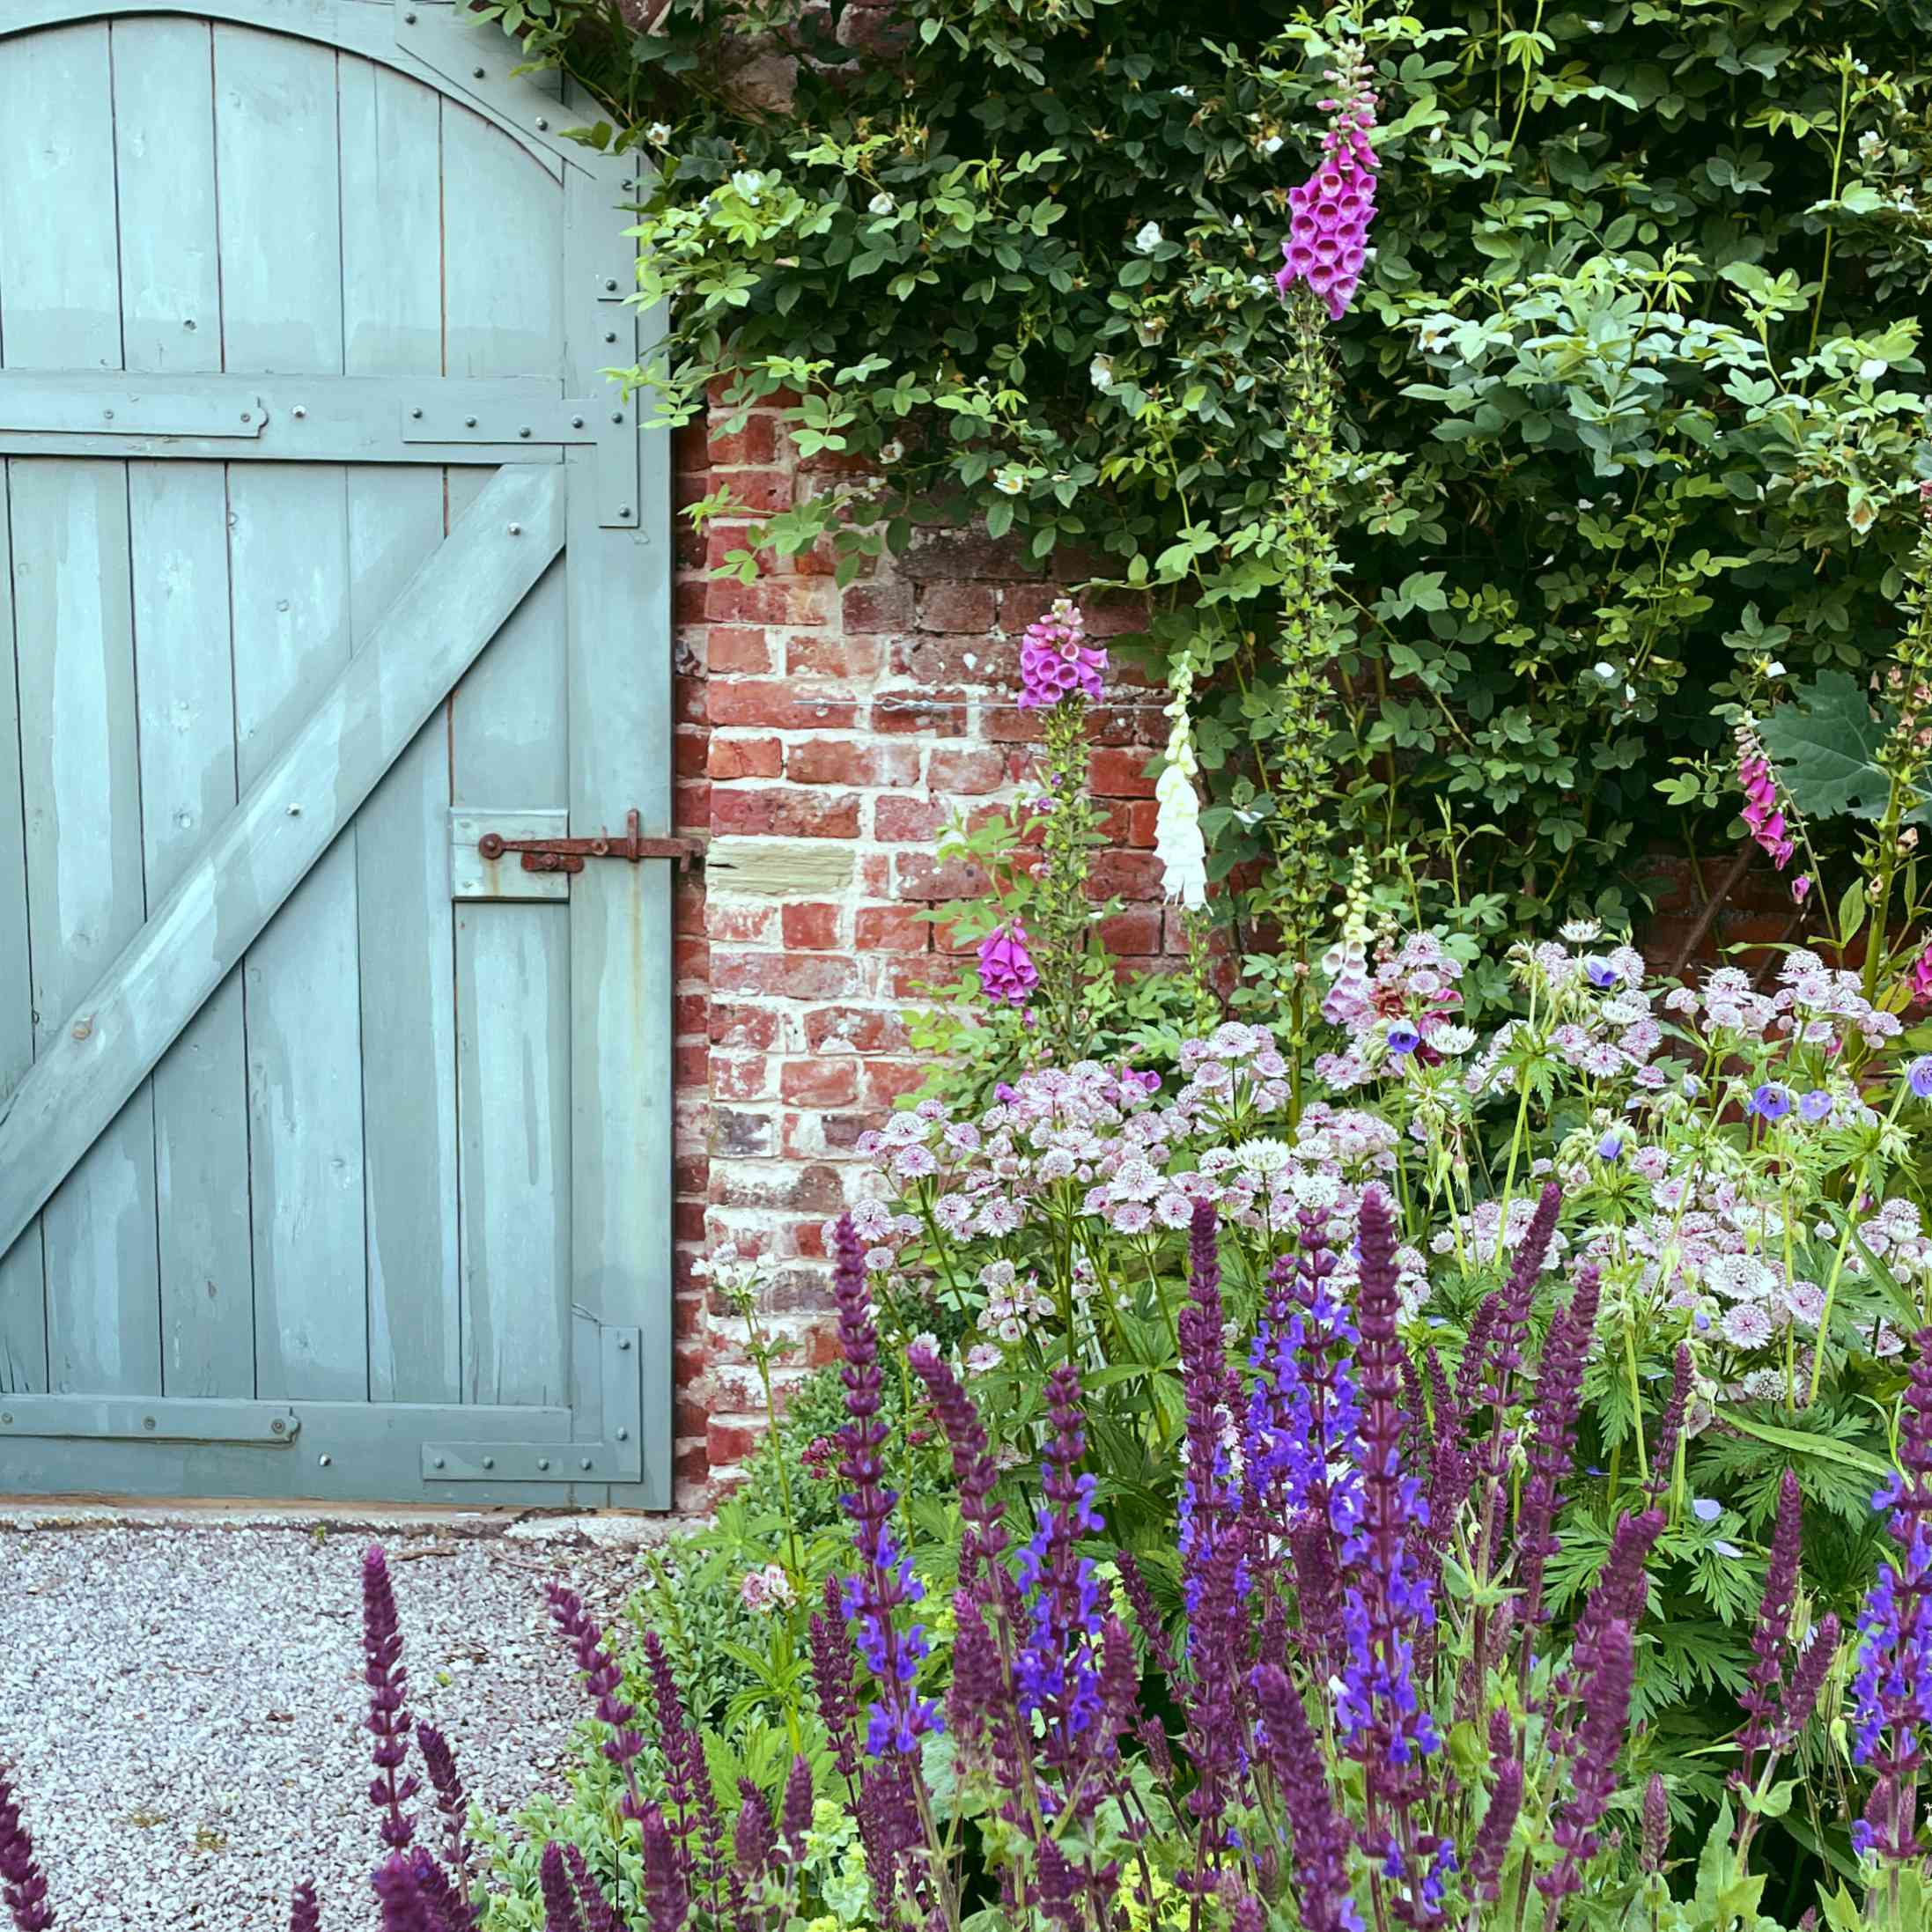 a teal gate and tons of blooming flowers adorn this garden space